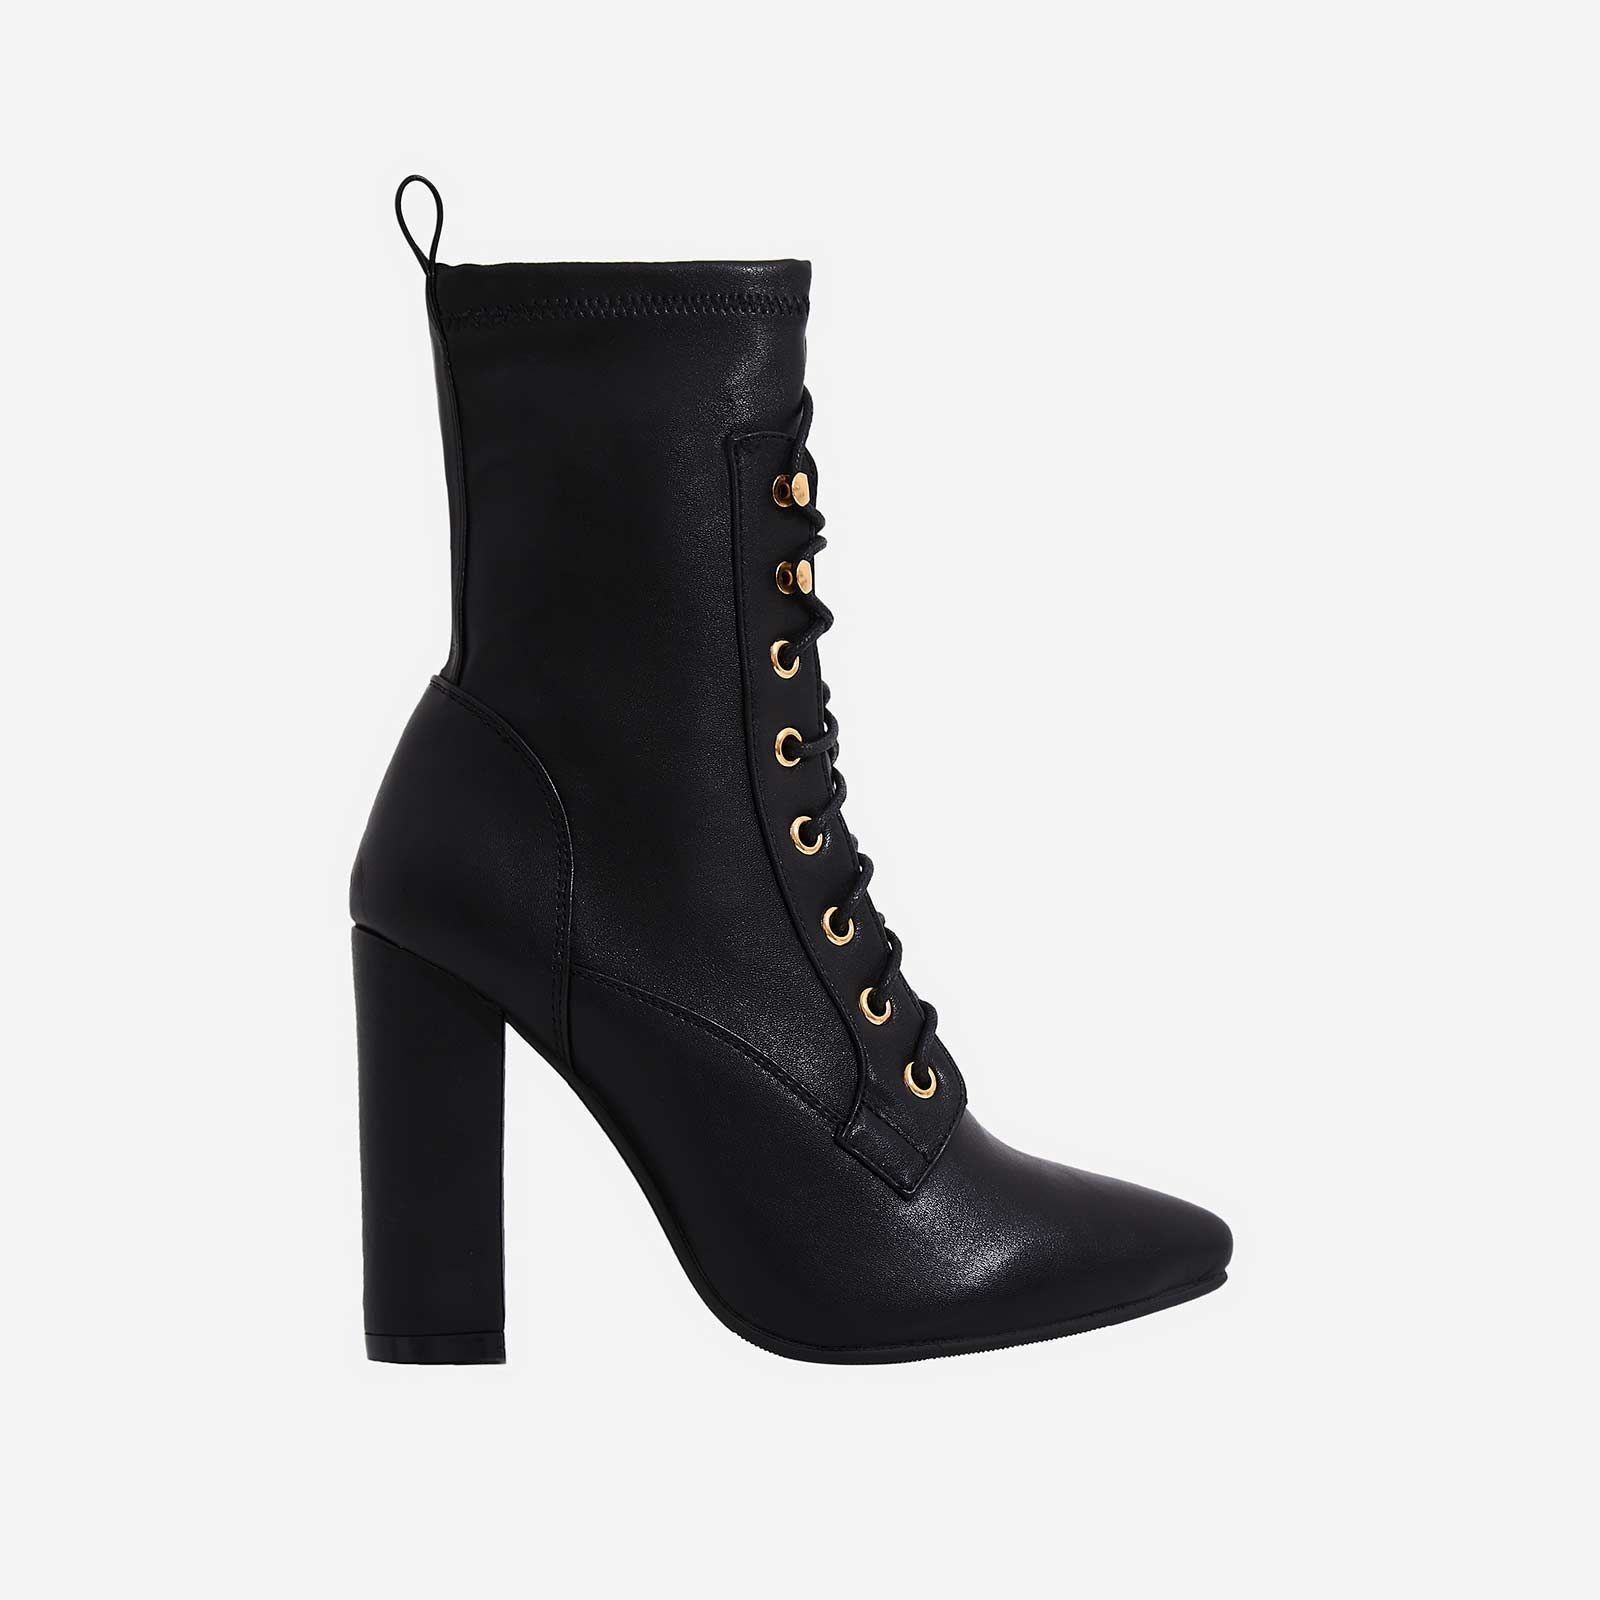 Maud Lace Up Block Heel Ankle Boot In Black Faux Leather